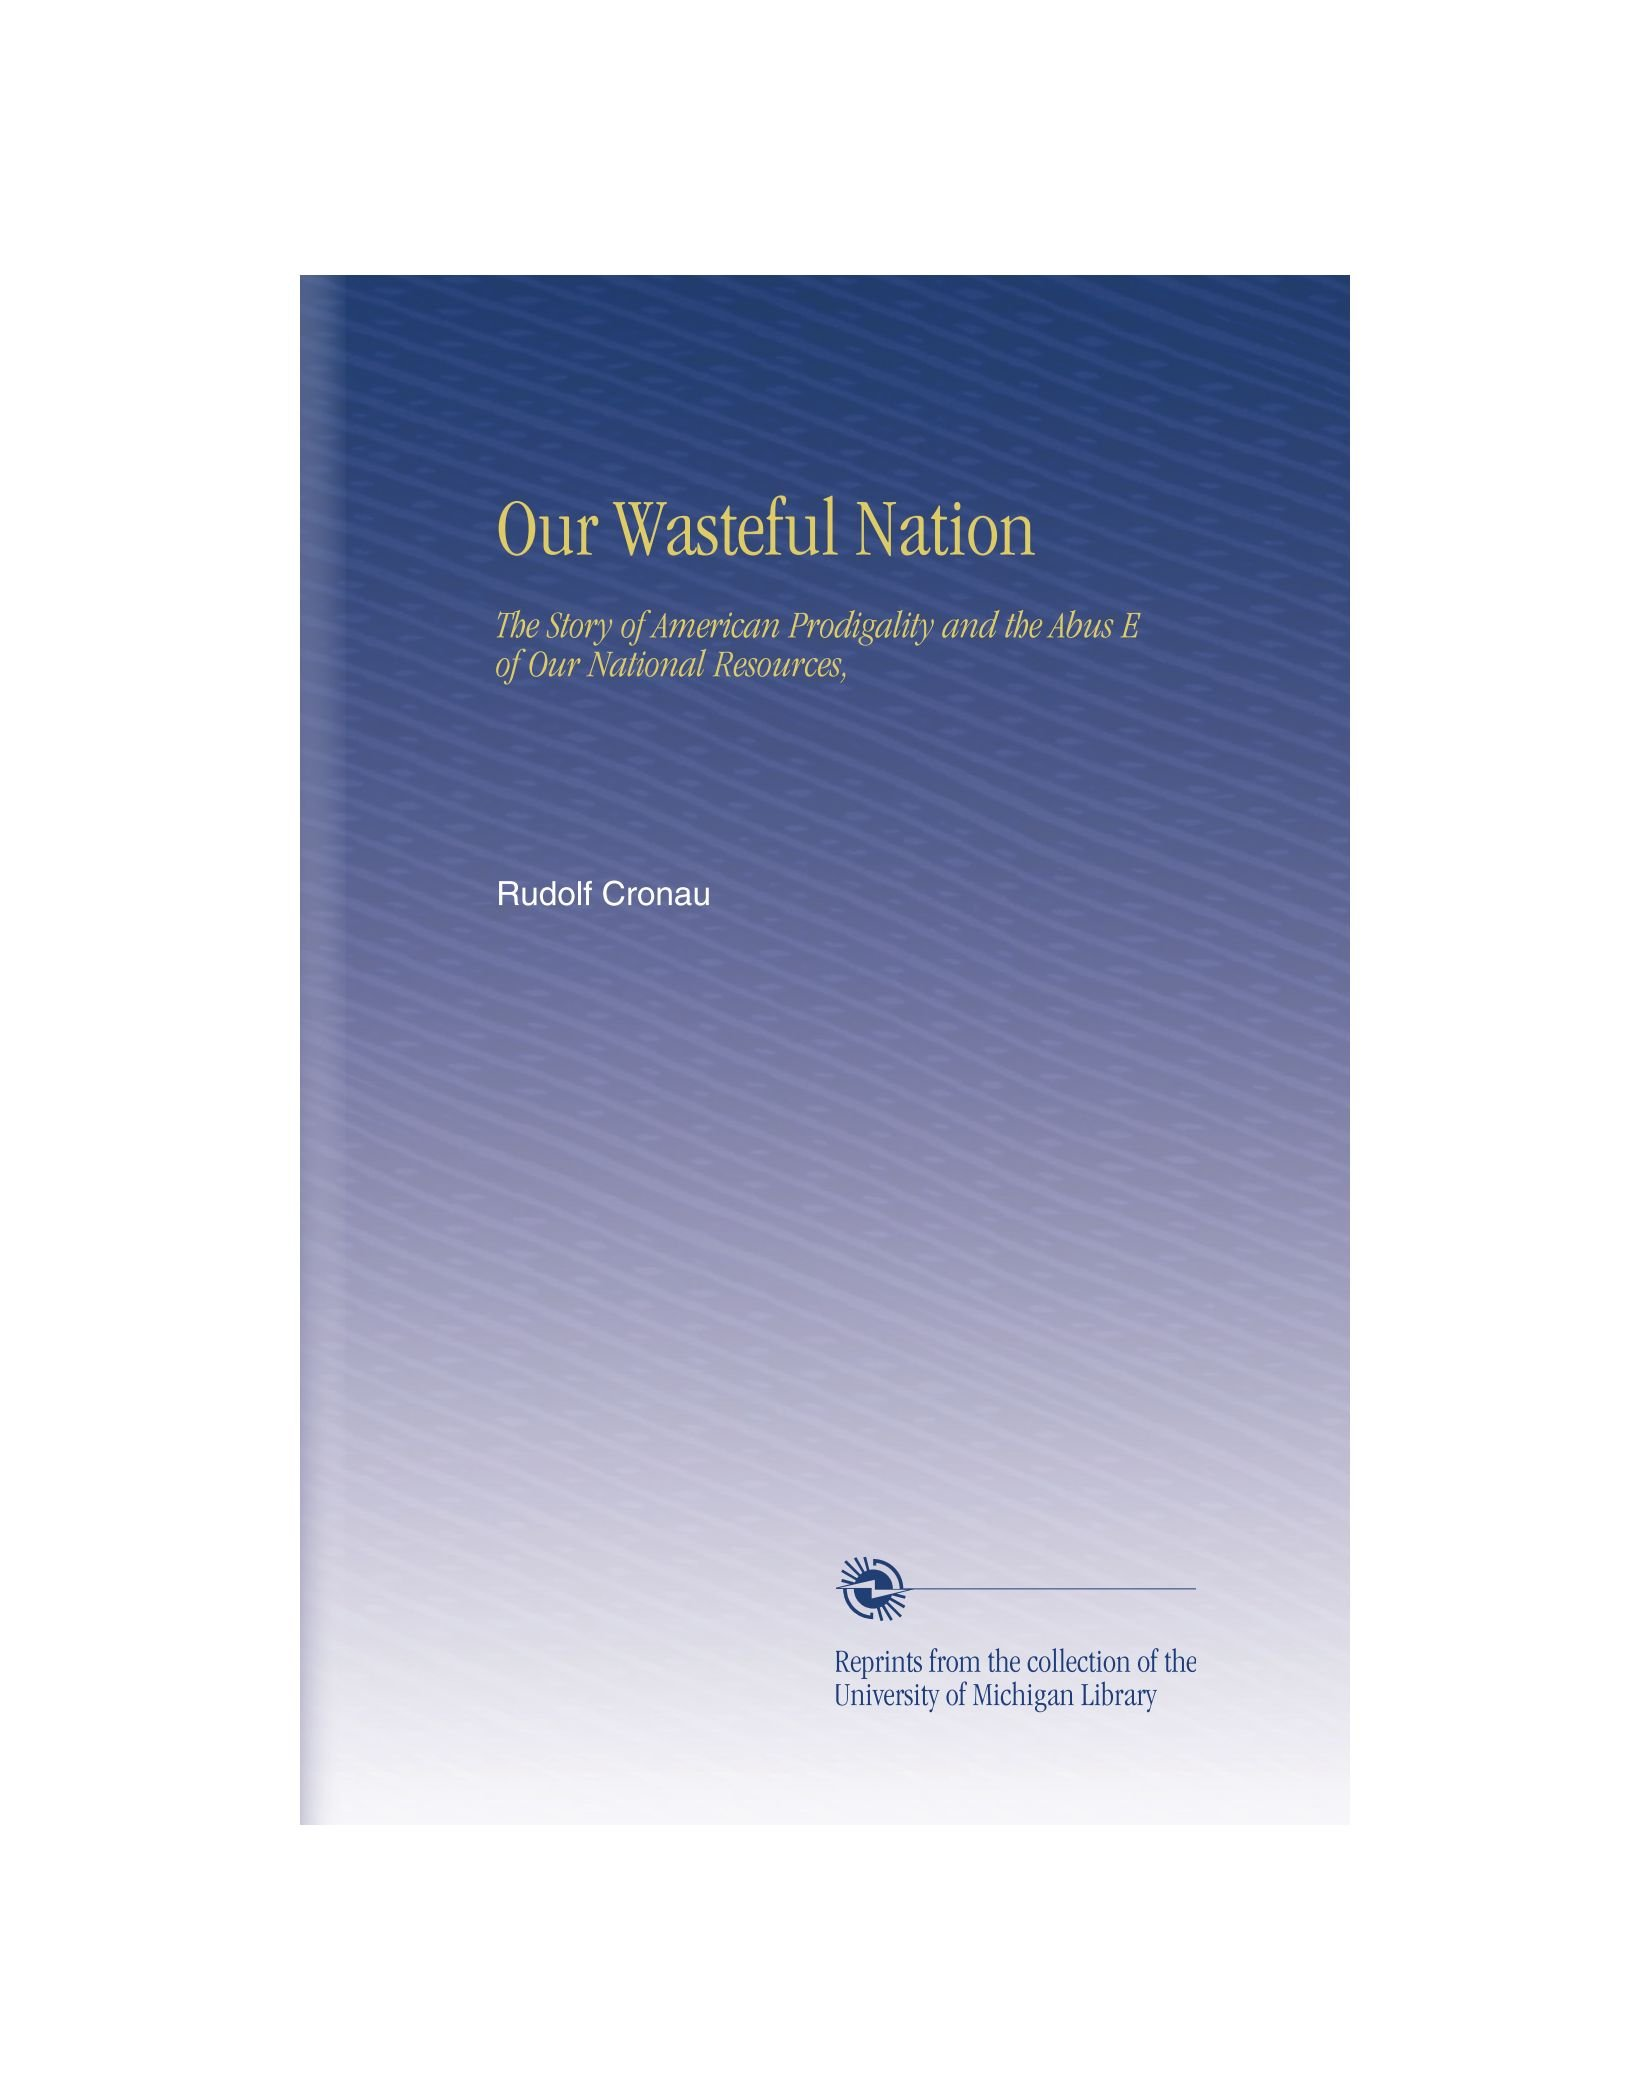 Download Our Wasteful Nation: The Story of American Prodigality and the Abus E of Our National Resources, pdf